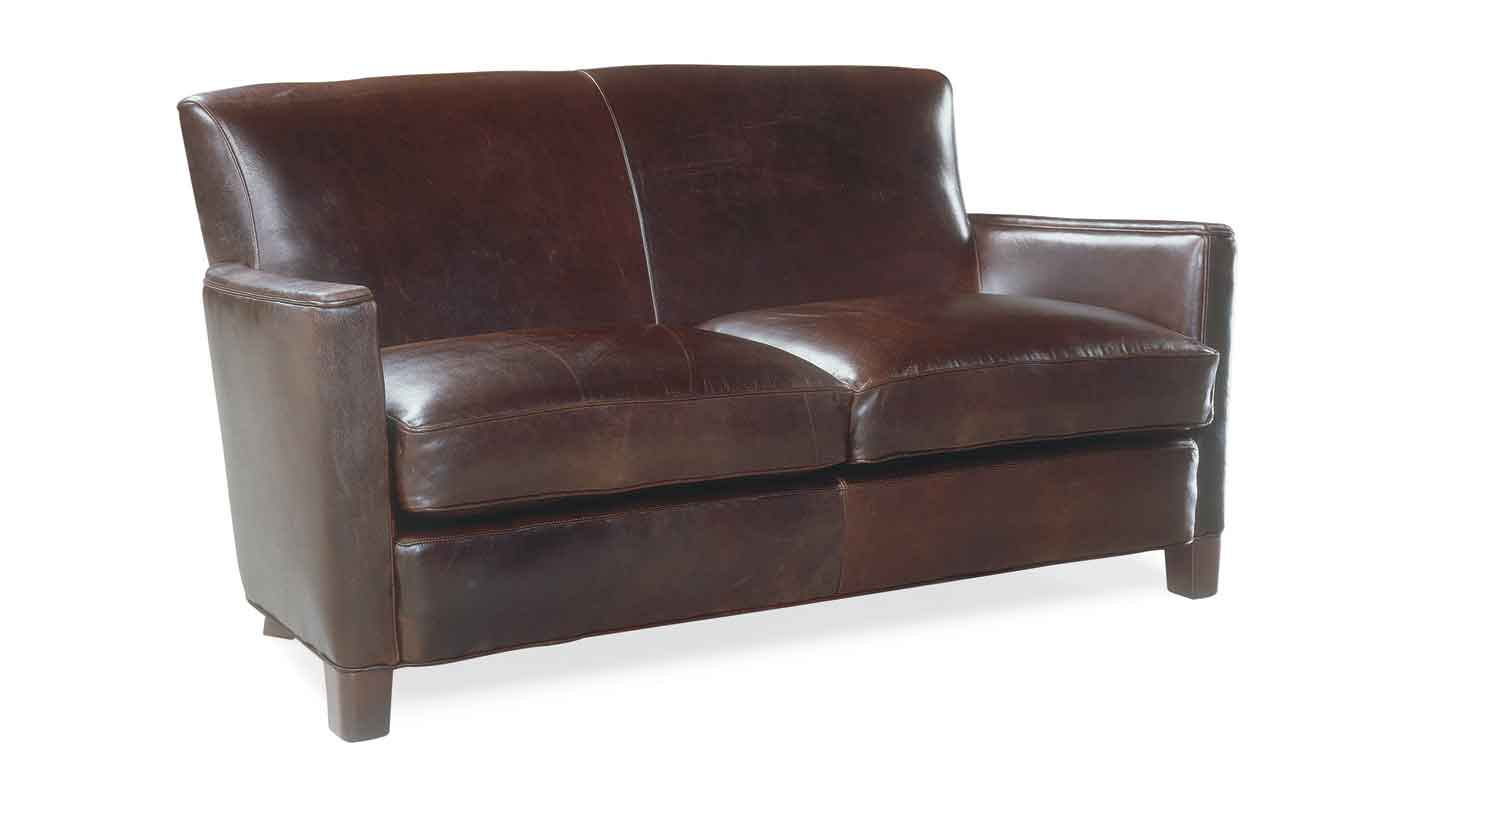 Circle Furniture Trent Leather Loveseat Loveseats Boston Circle Furniture